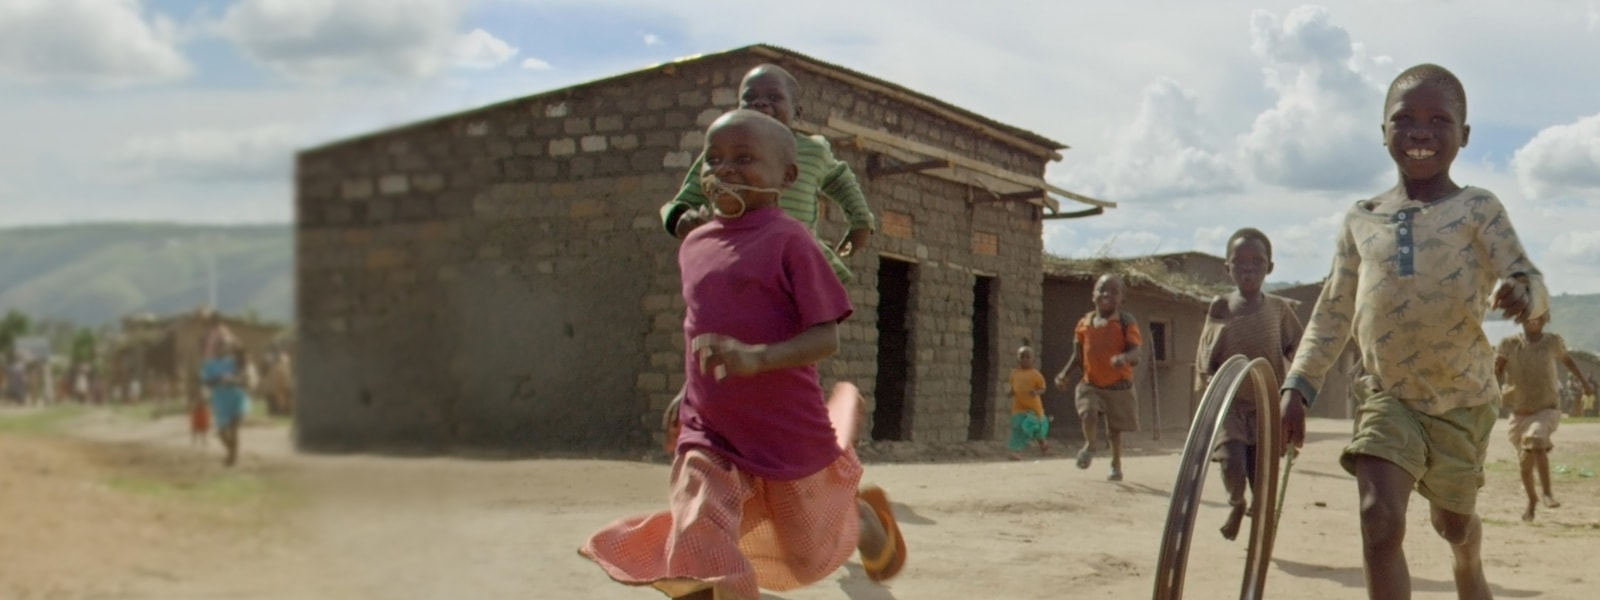 Children playing in an African village.